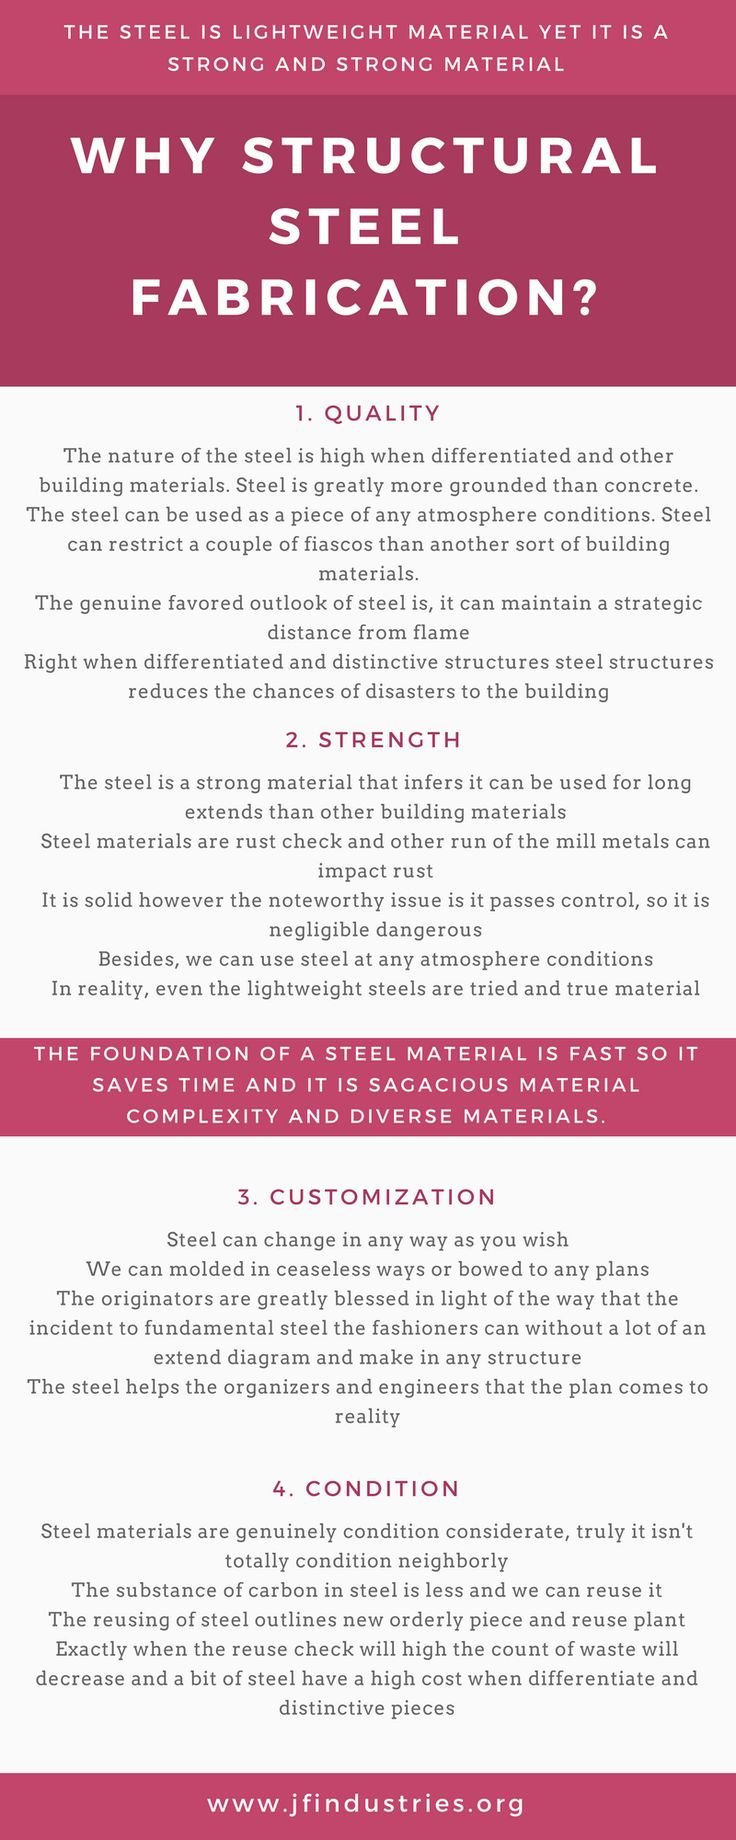 Structural steel has a long list of benefits associated with it as a sustainable and highly reliable material for construction. However, the fabrication and welding processes necessary to transform structural steel into products used for construction and other industrial applications are complex and demanding. If you do not find a company who can pull them off properly the material's viability may be compromised.